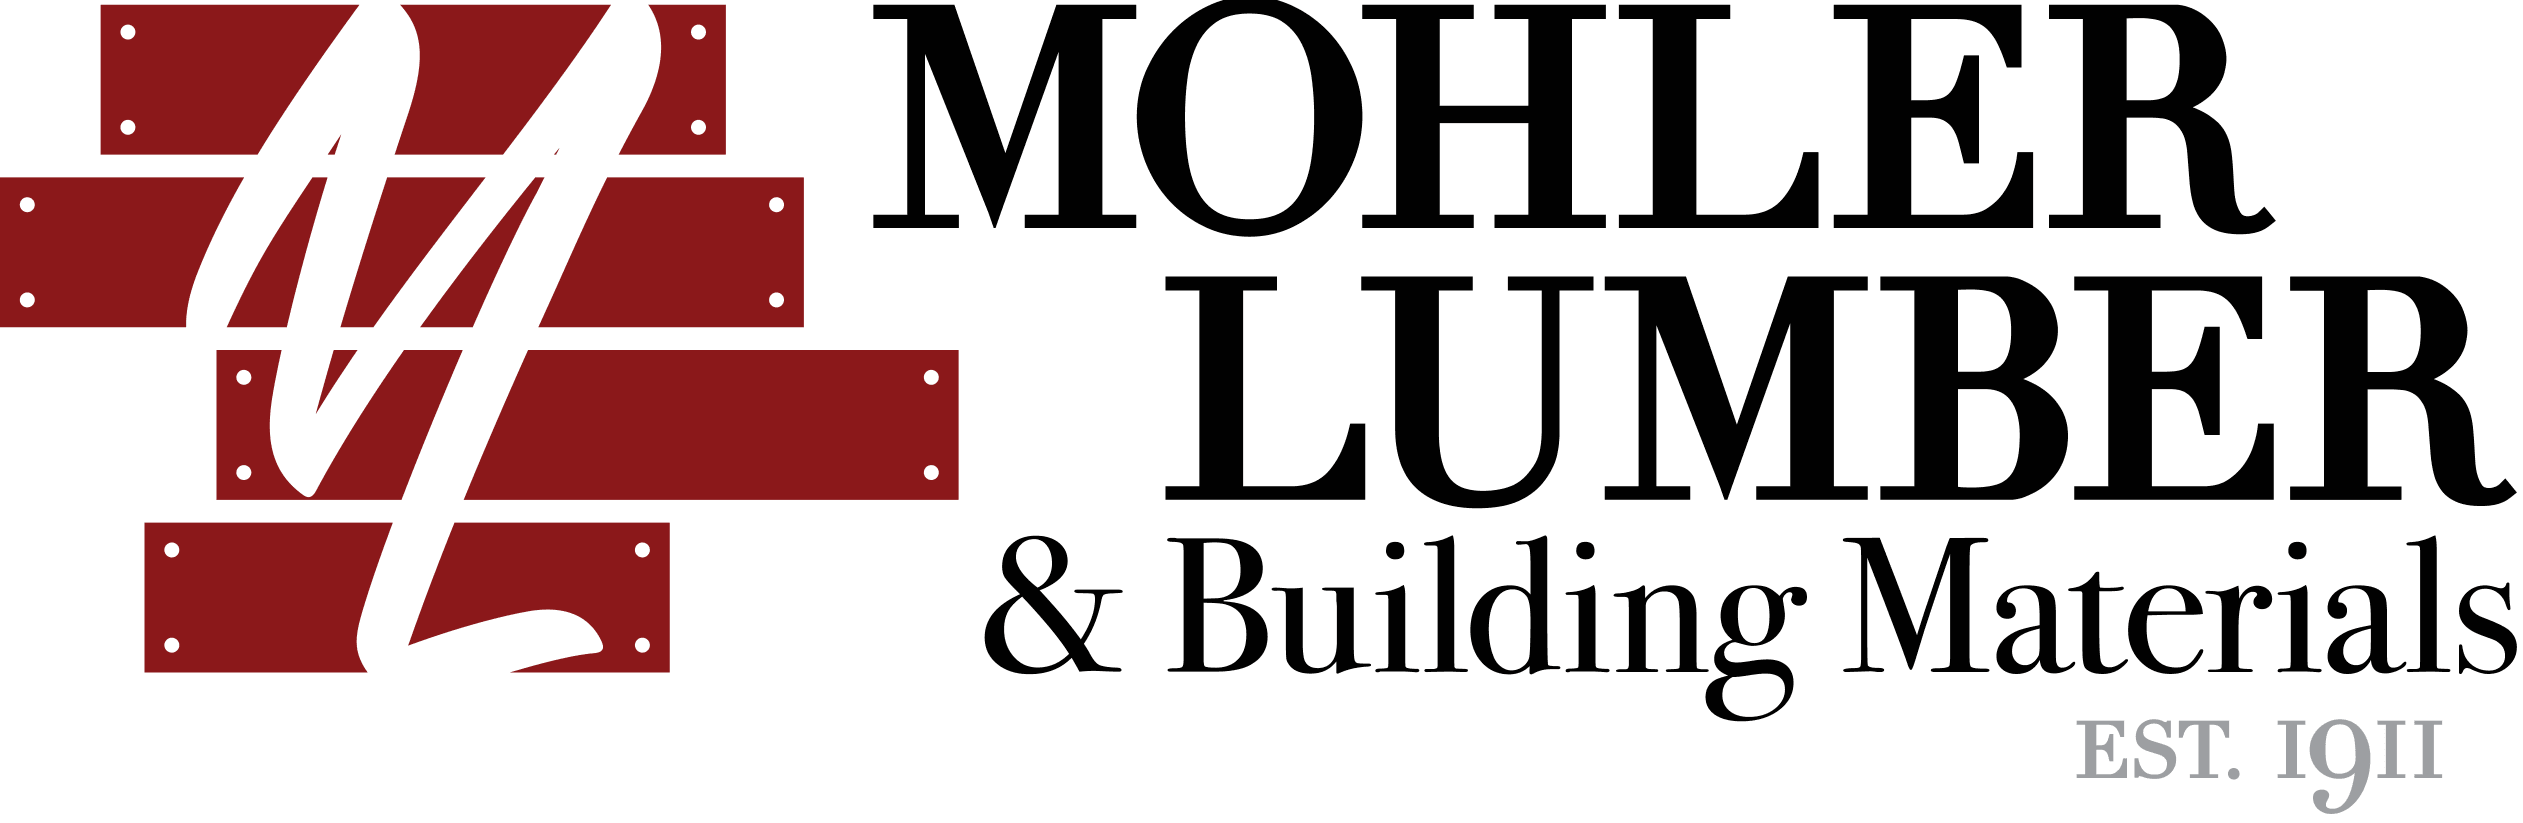 Mohler Lumber & Building Materials new logo